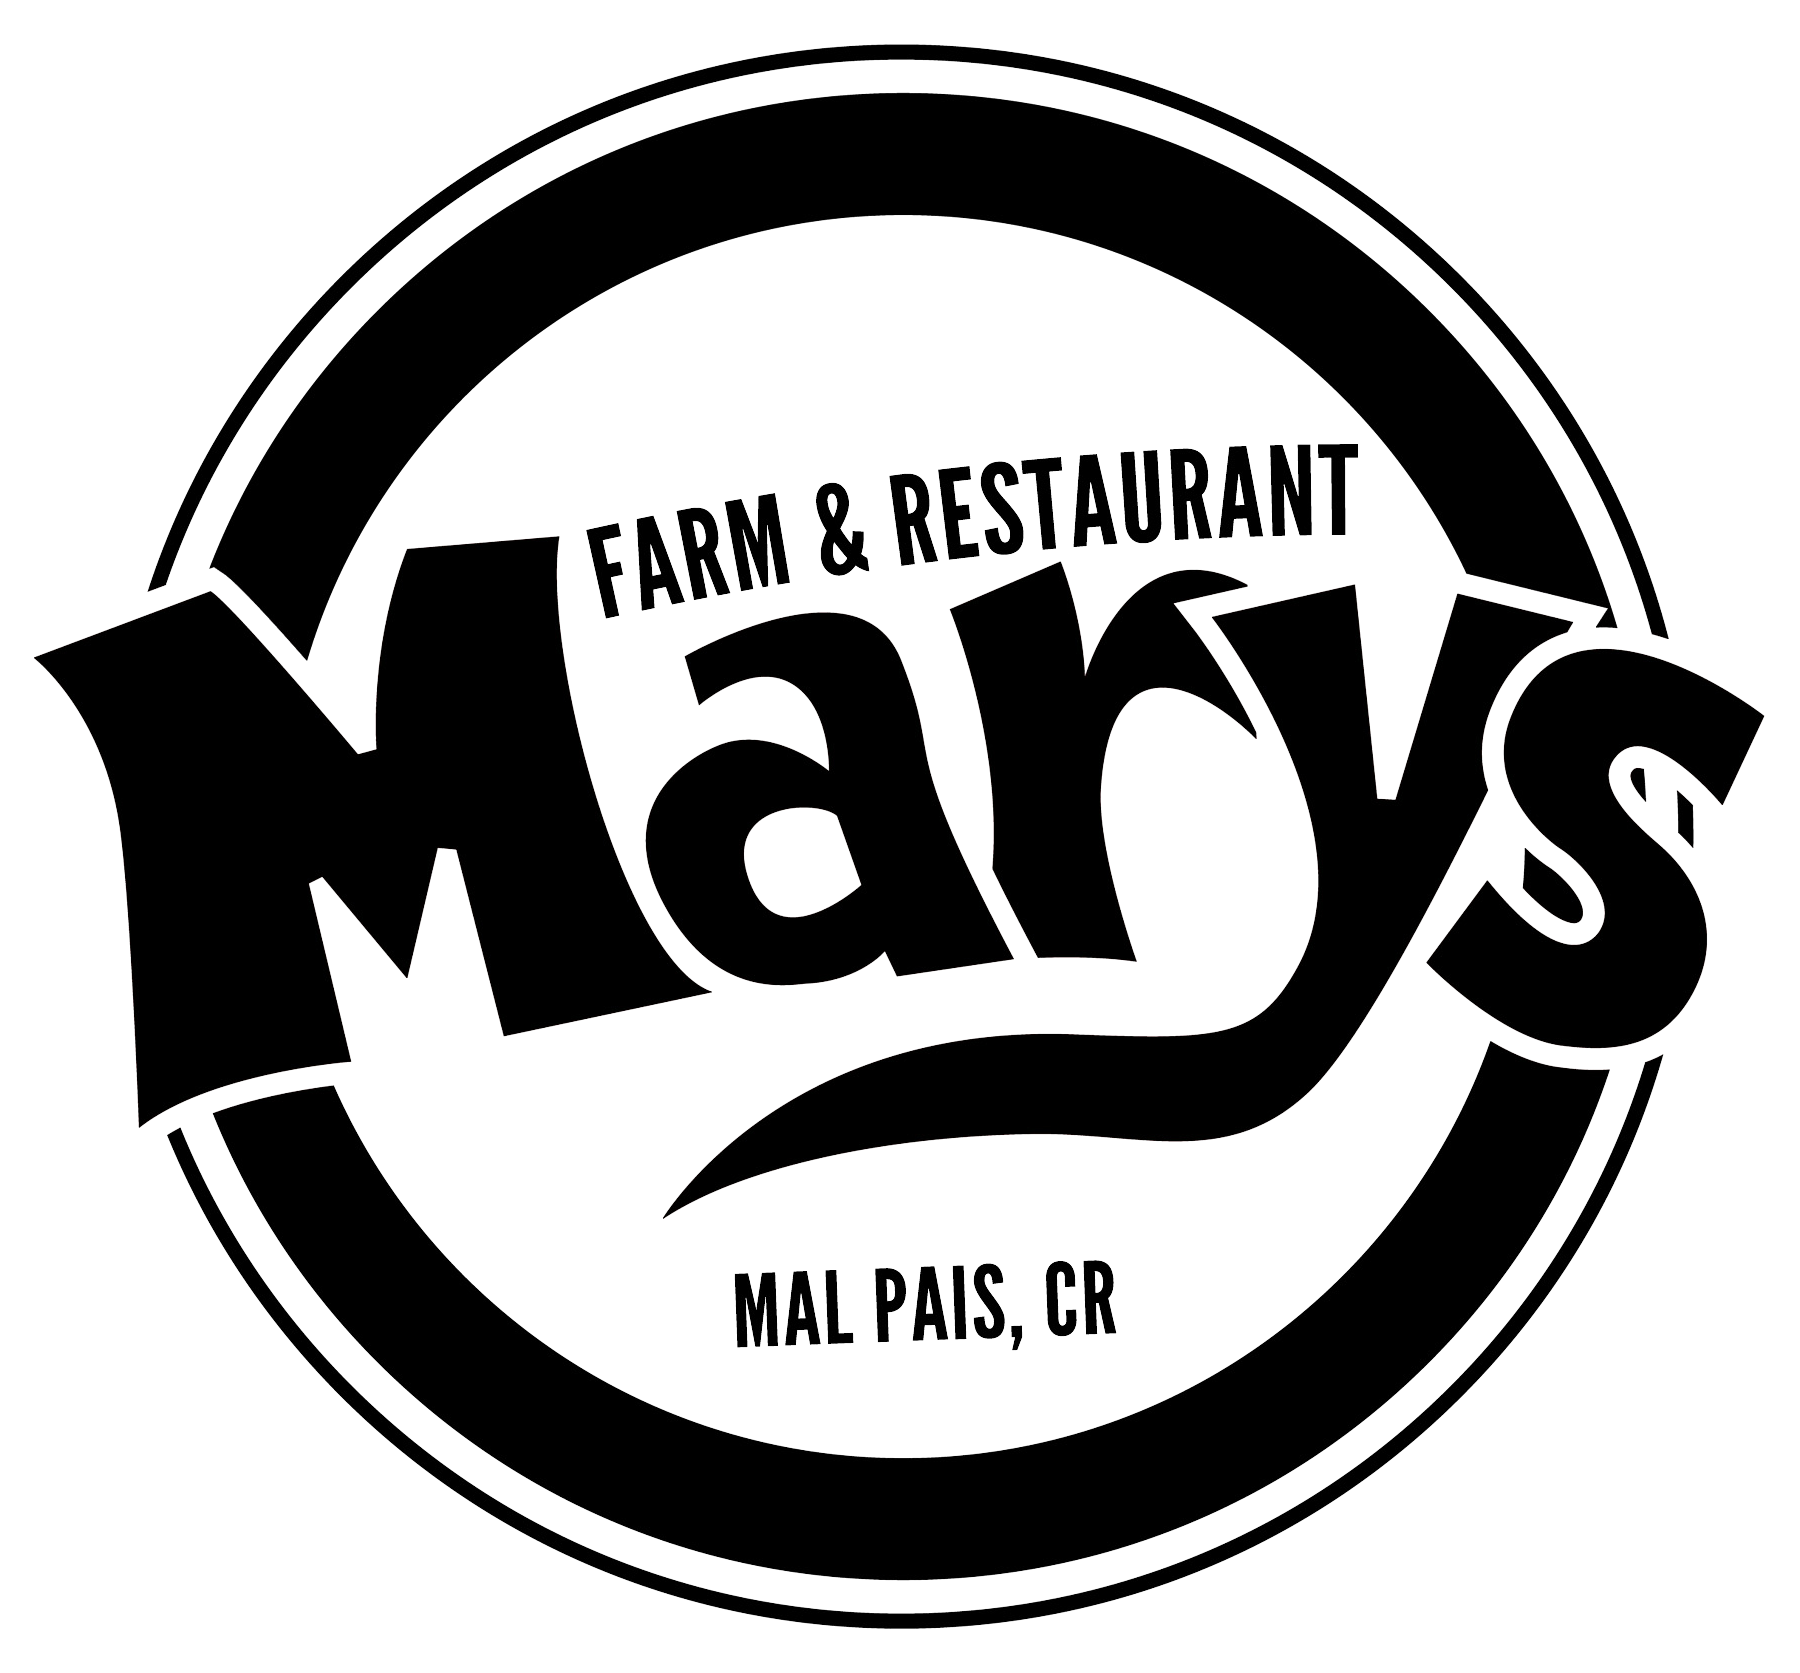 Mary's Restaurant & Farm